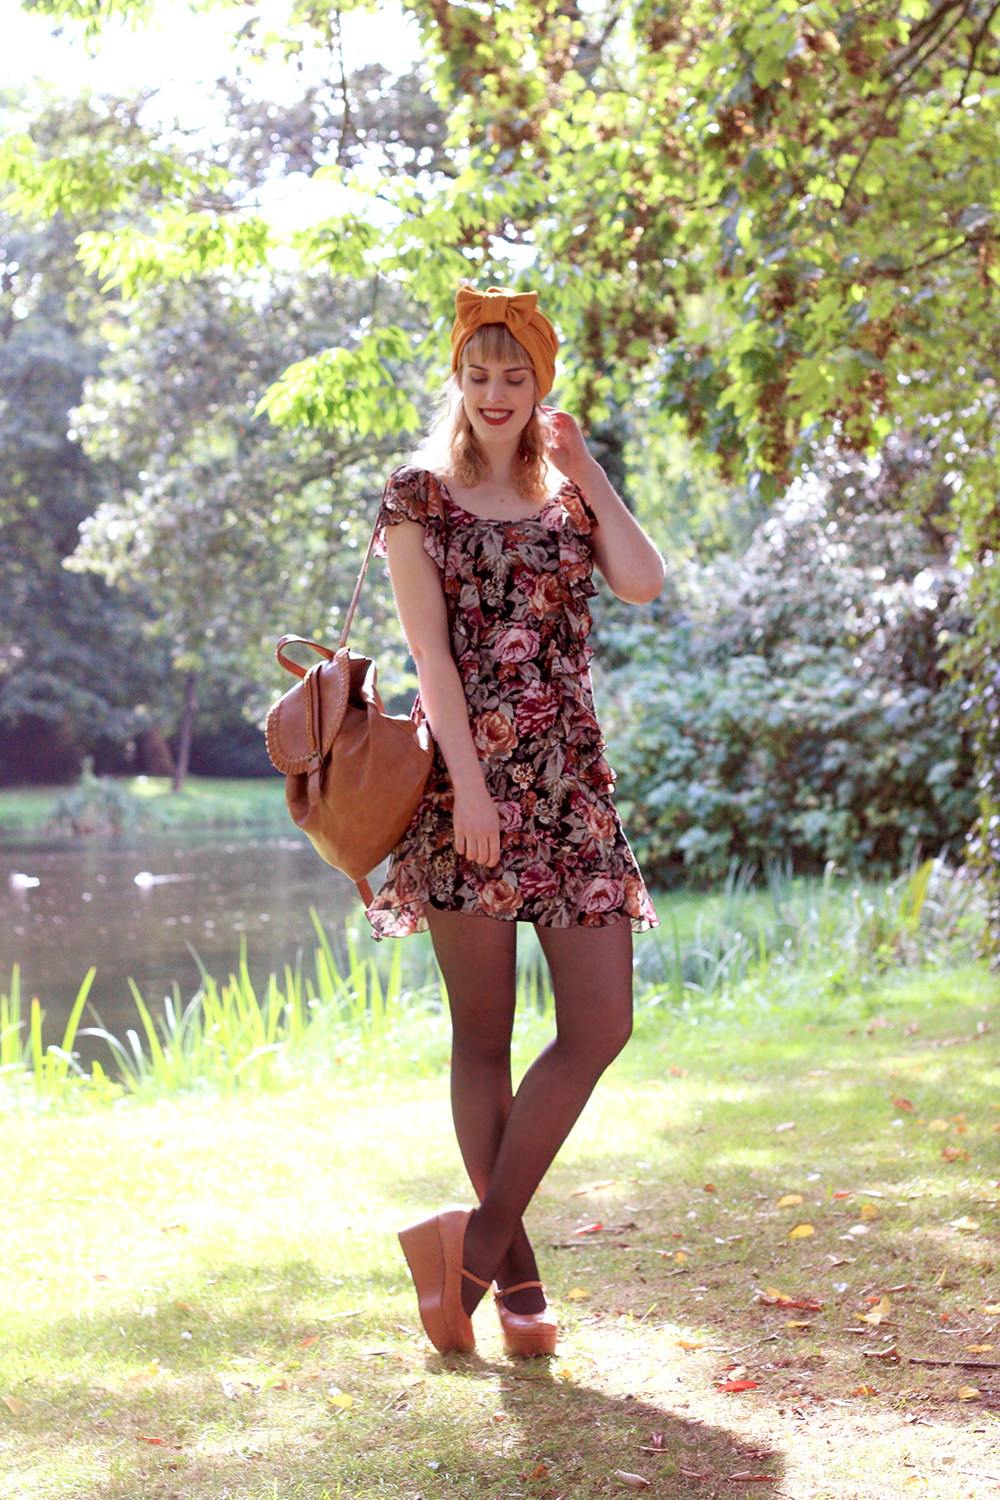 Retro romantic look H&M floral dress turban vintage style fashion blog Sacha platforms wedges mary janes backpack Bershka